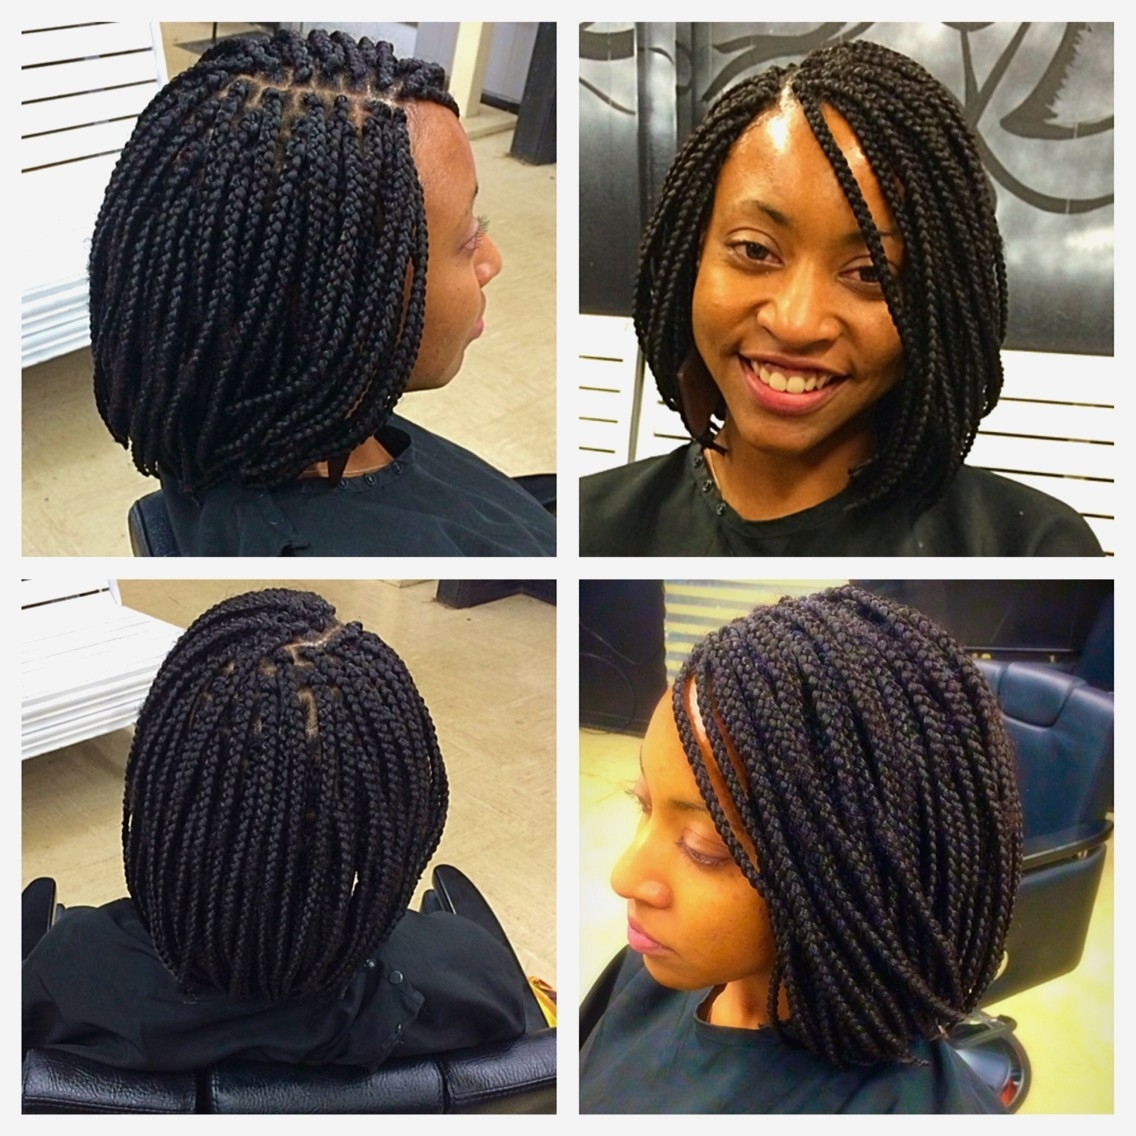 Most Recent Short Braided Hairstyles Throughout Braid Hairstyles : Black Short Braids Hairstyles Collection At Best (View 10 of 15)